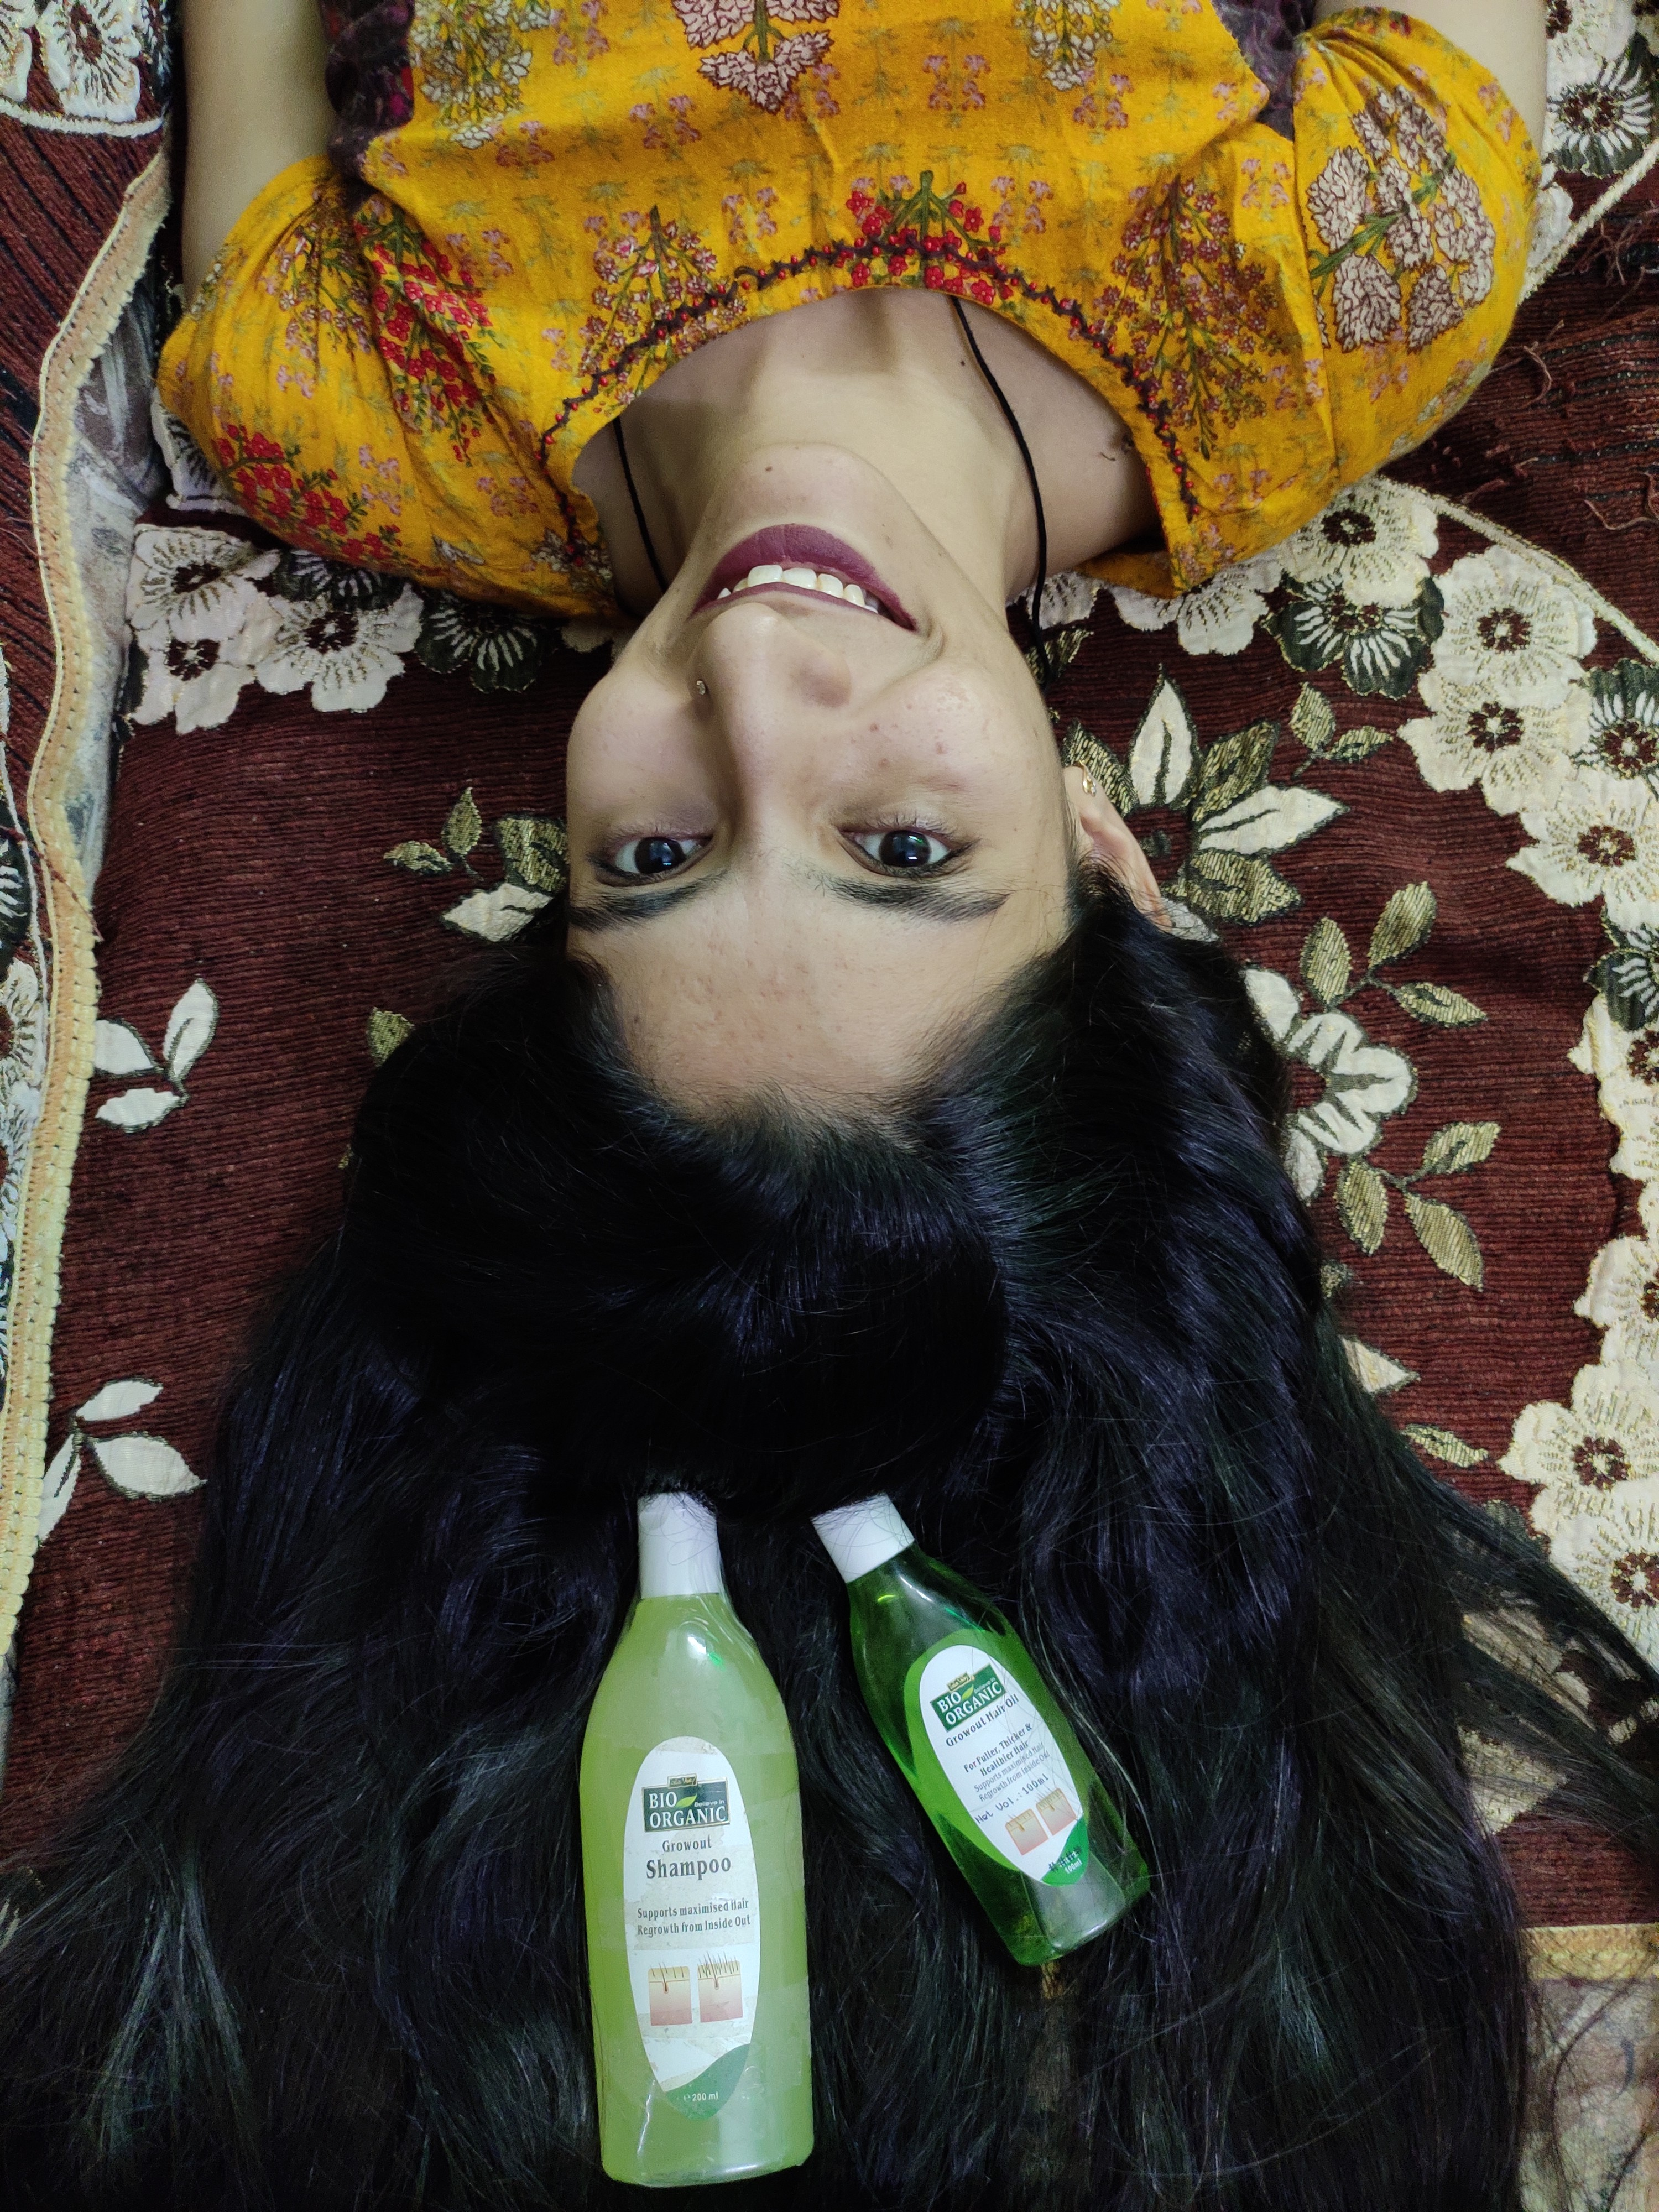 Indus Valley Bio Organic Growout Hair Oil-Satisfied with the product-By razina126